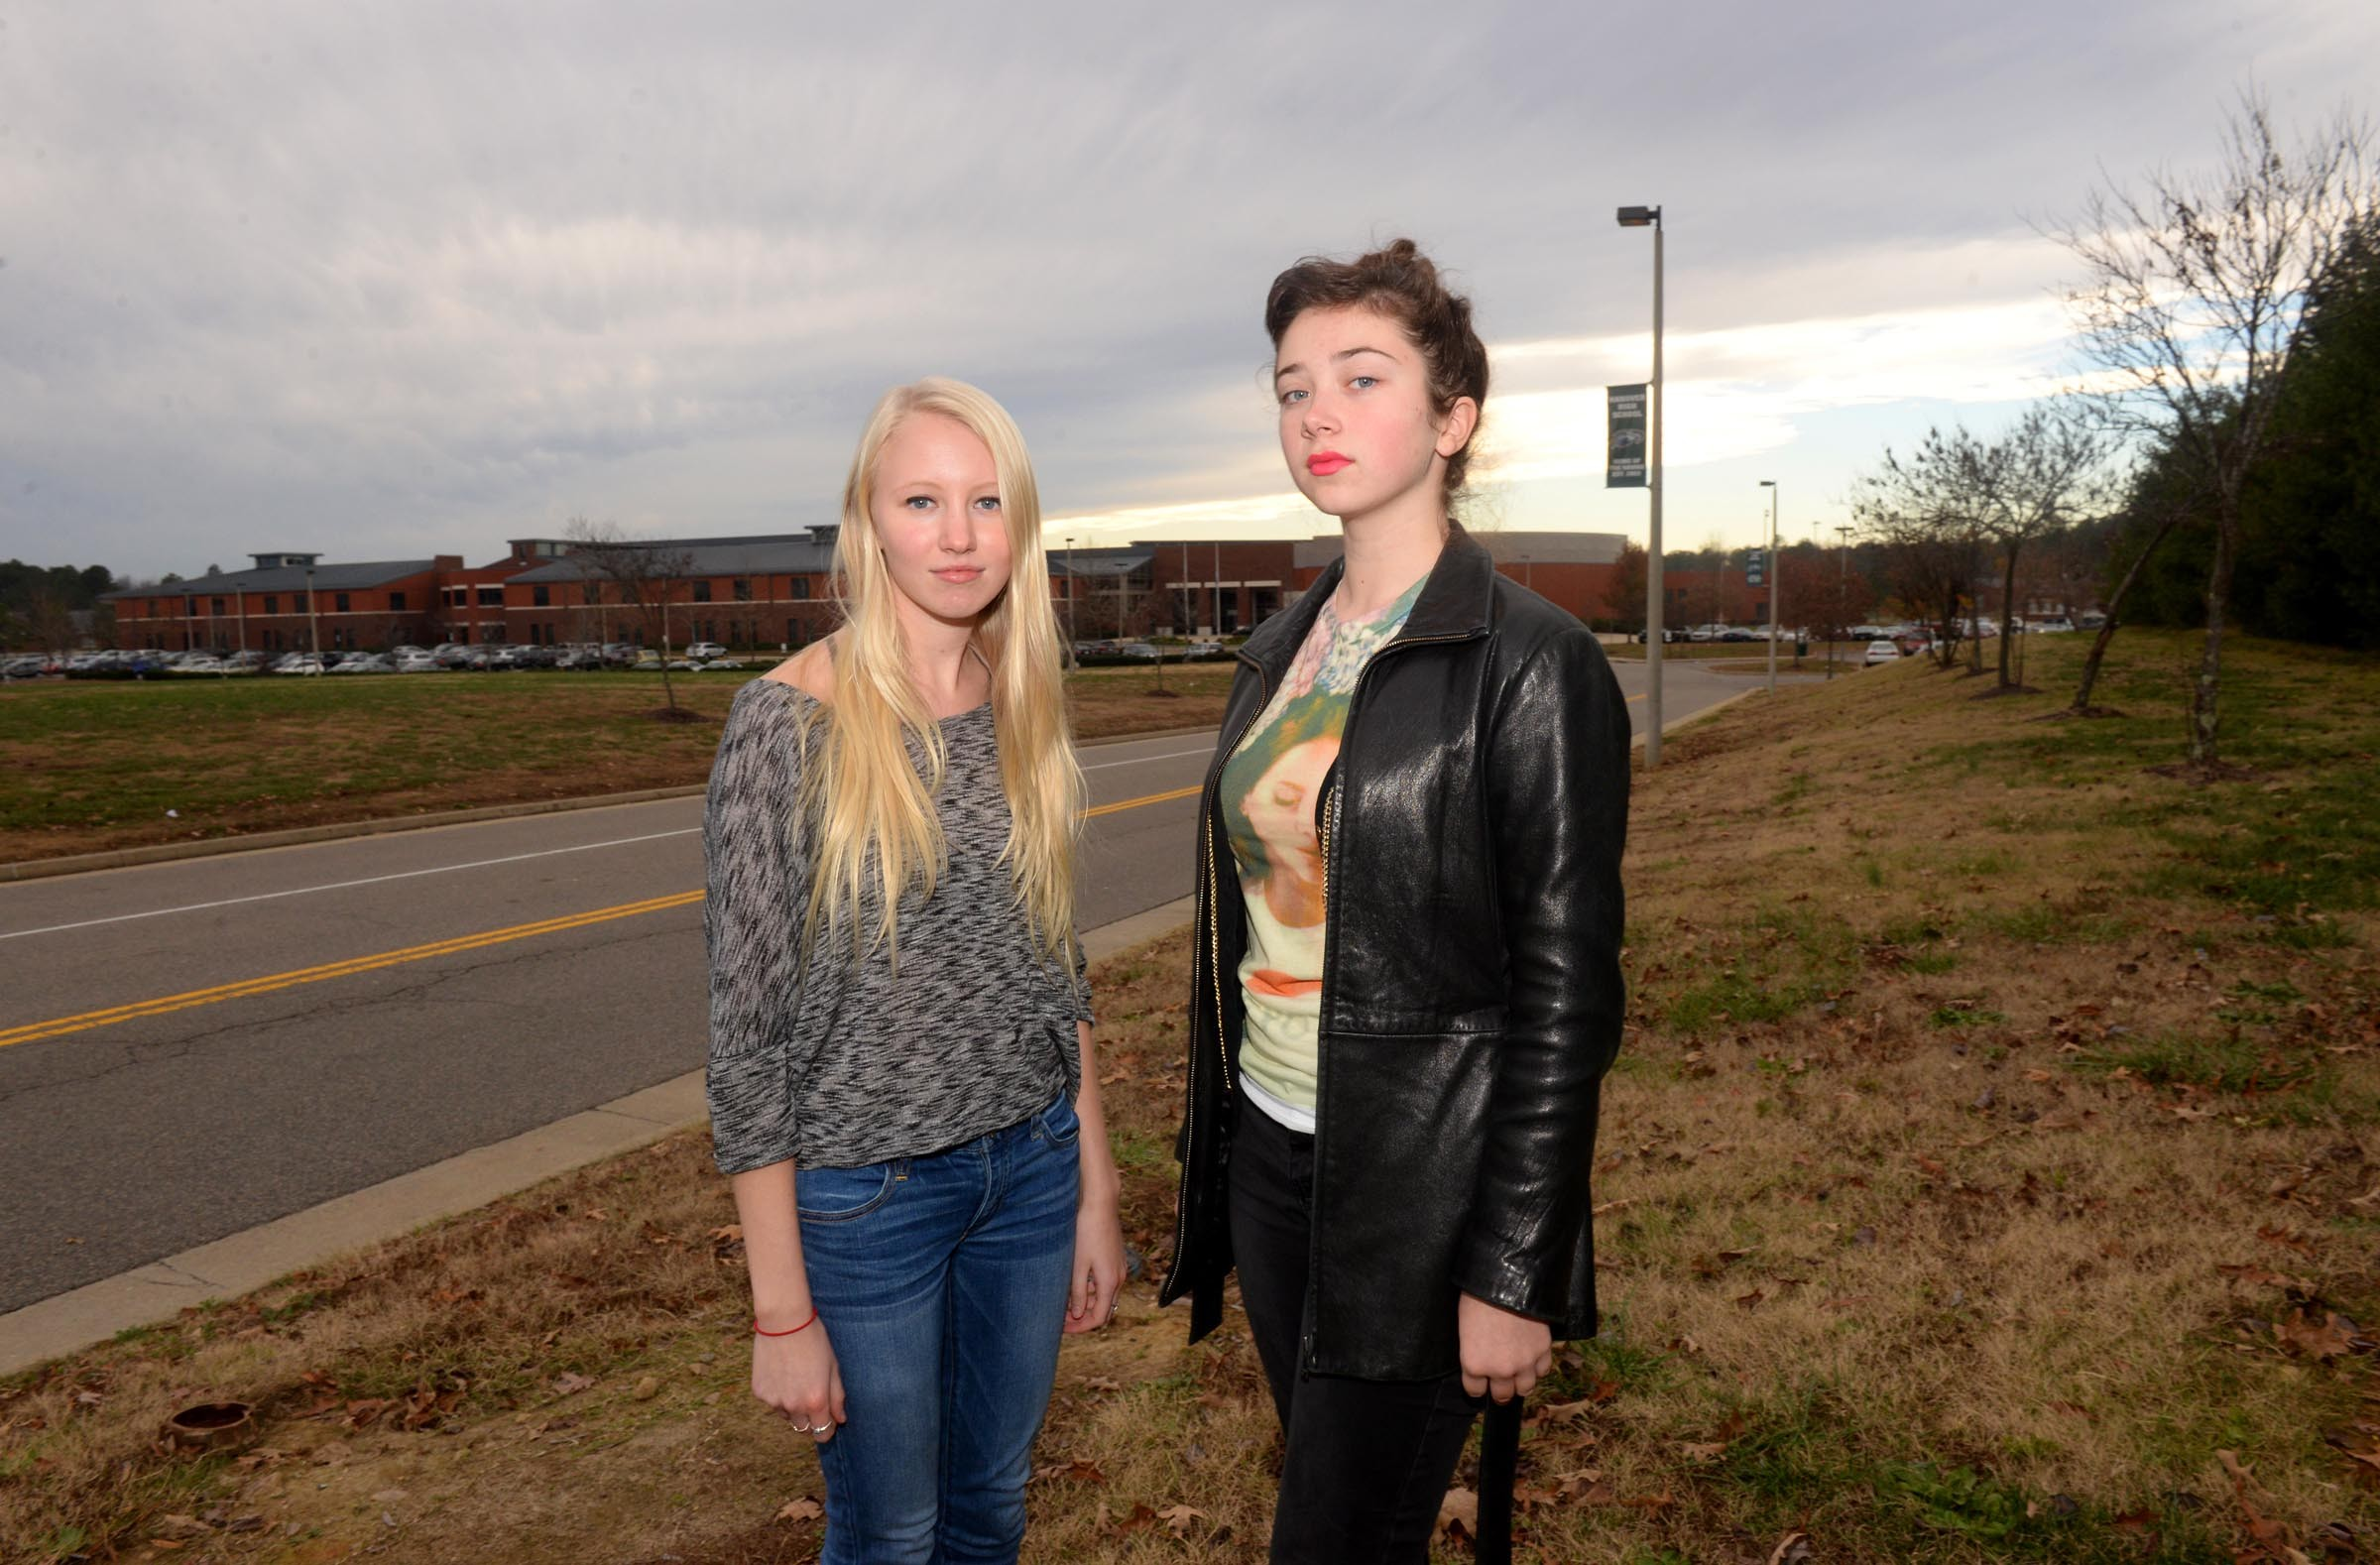 click to enlarge Hanover High students Stephanie Mayle and Georgia Geen are  part of a group that wants the